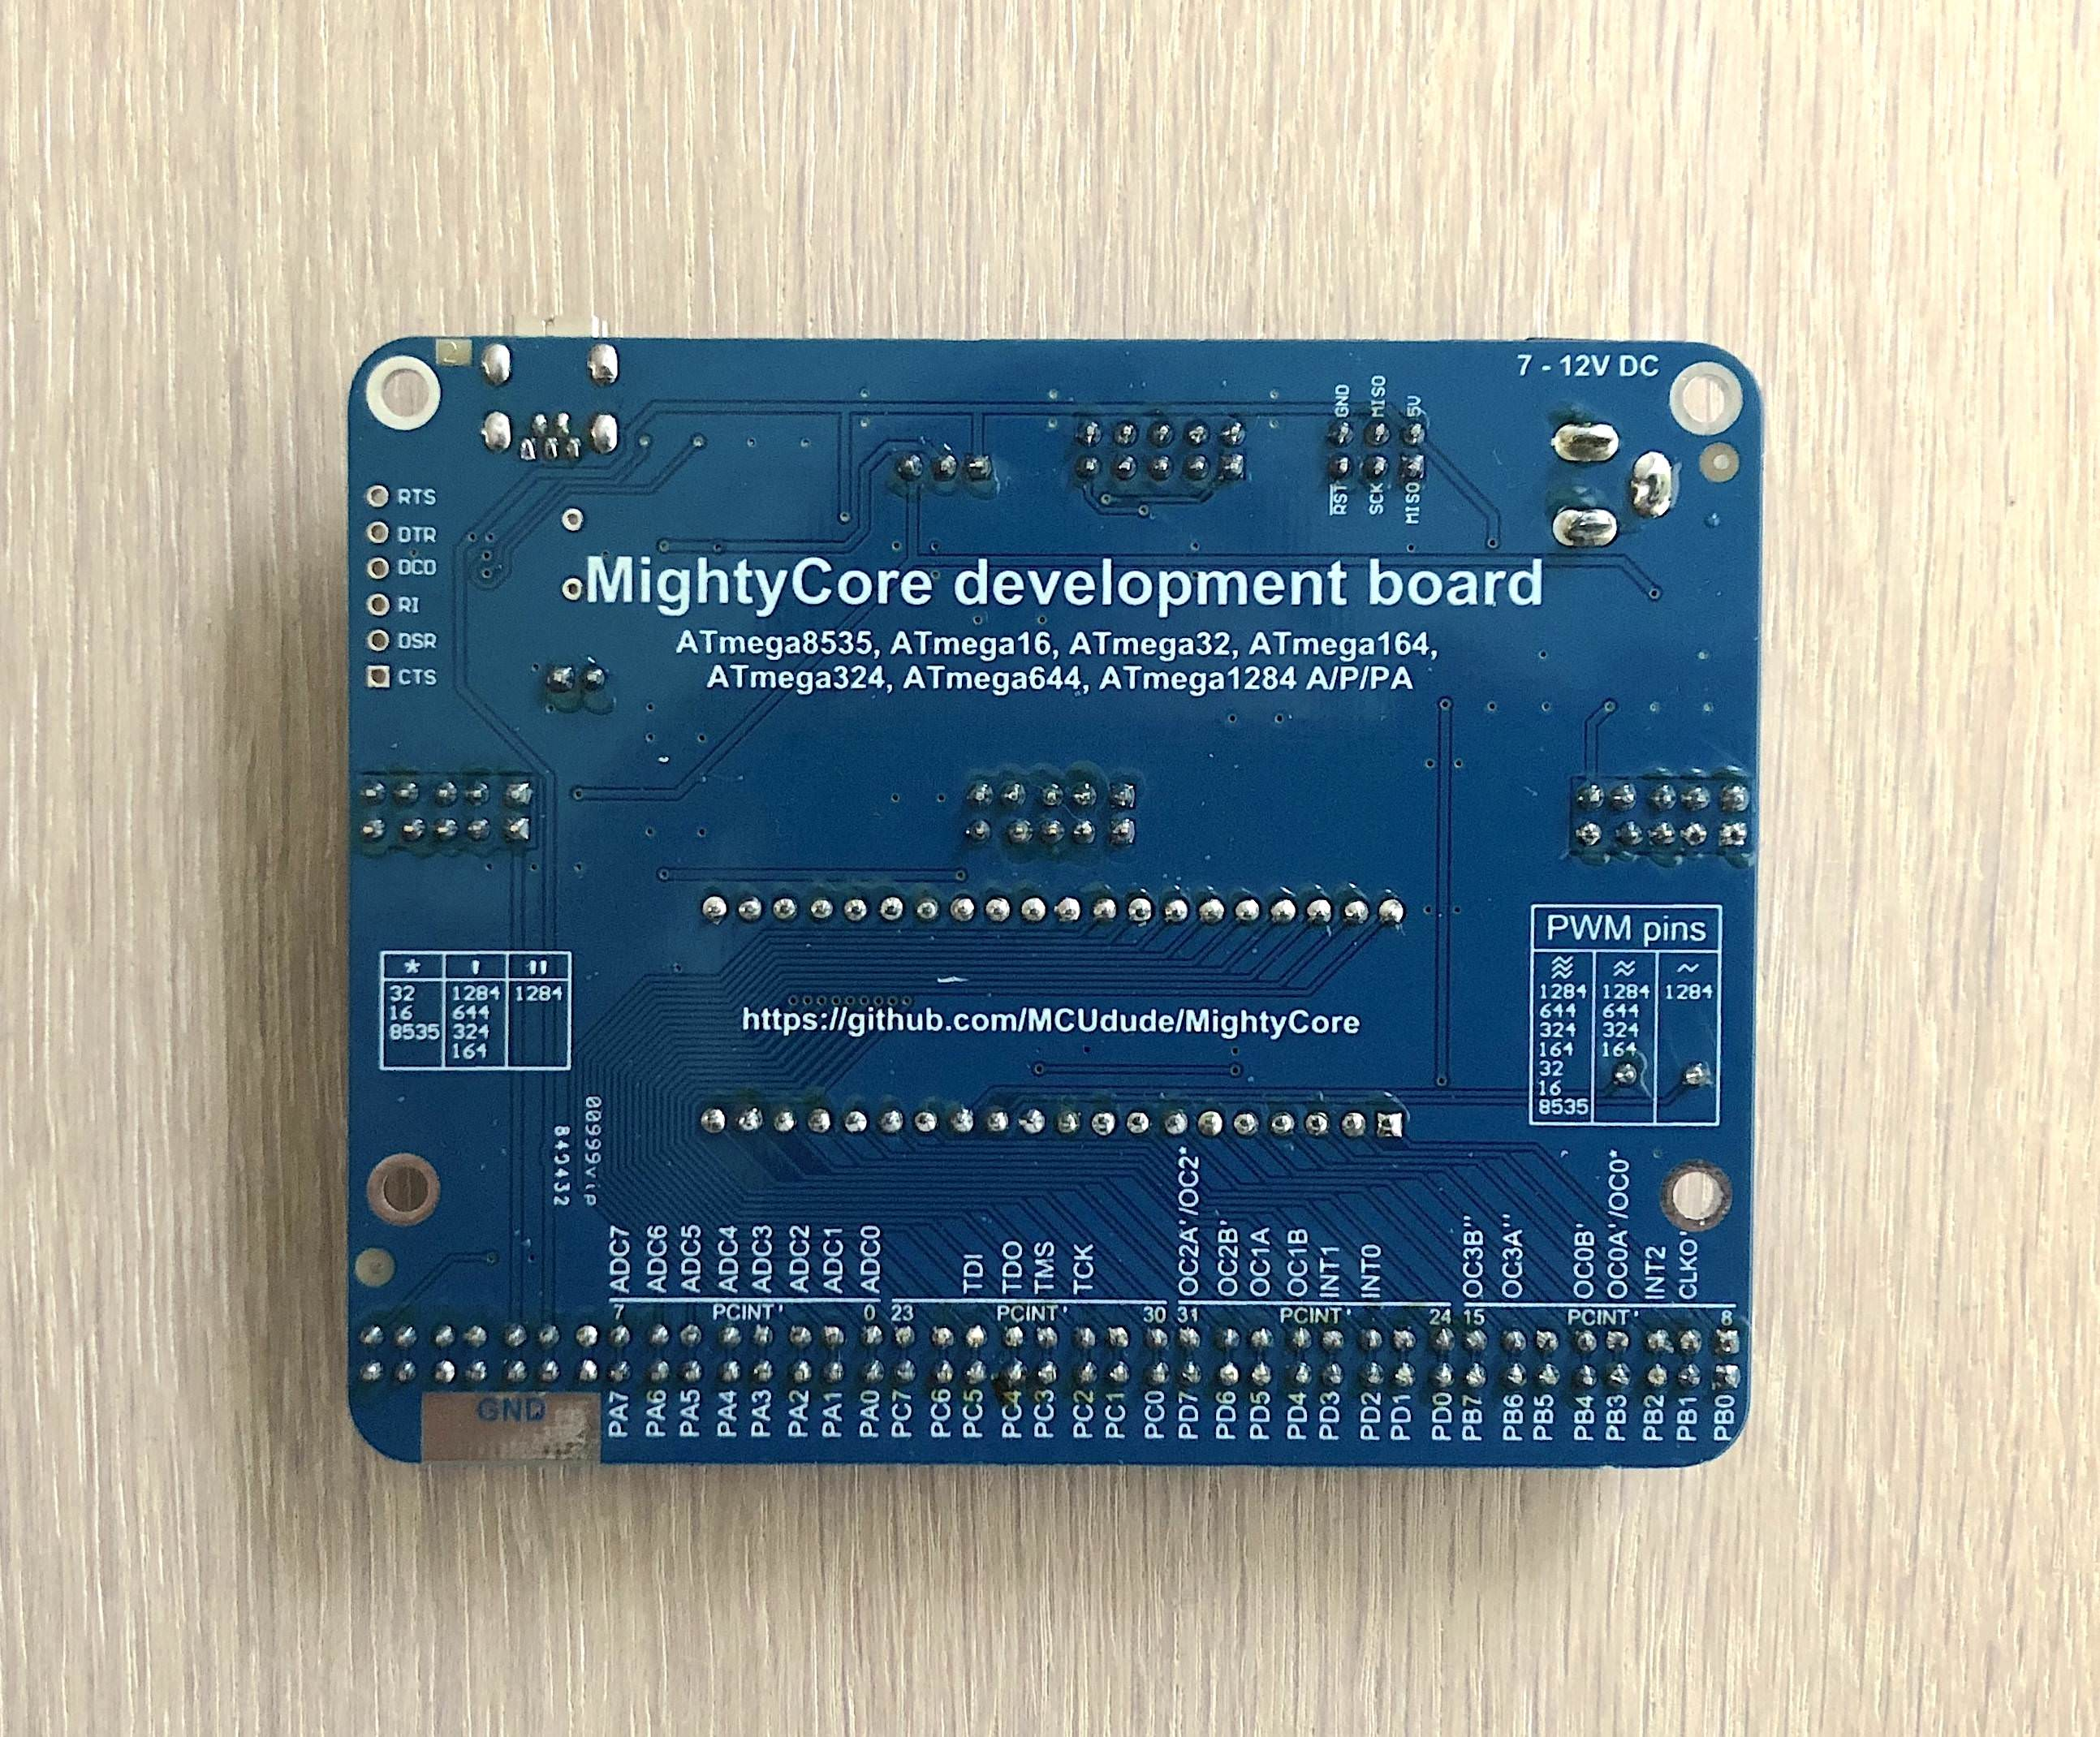 Development board back